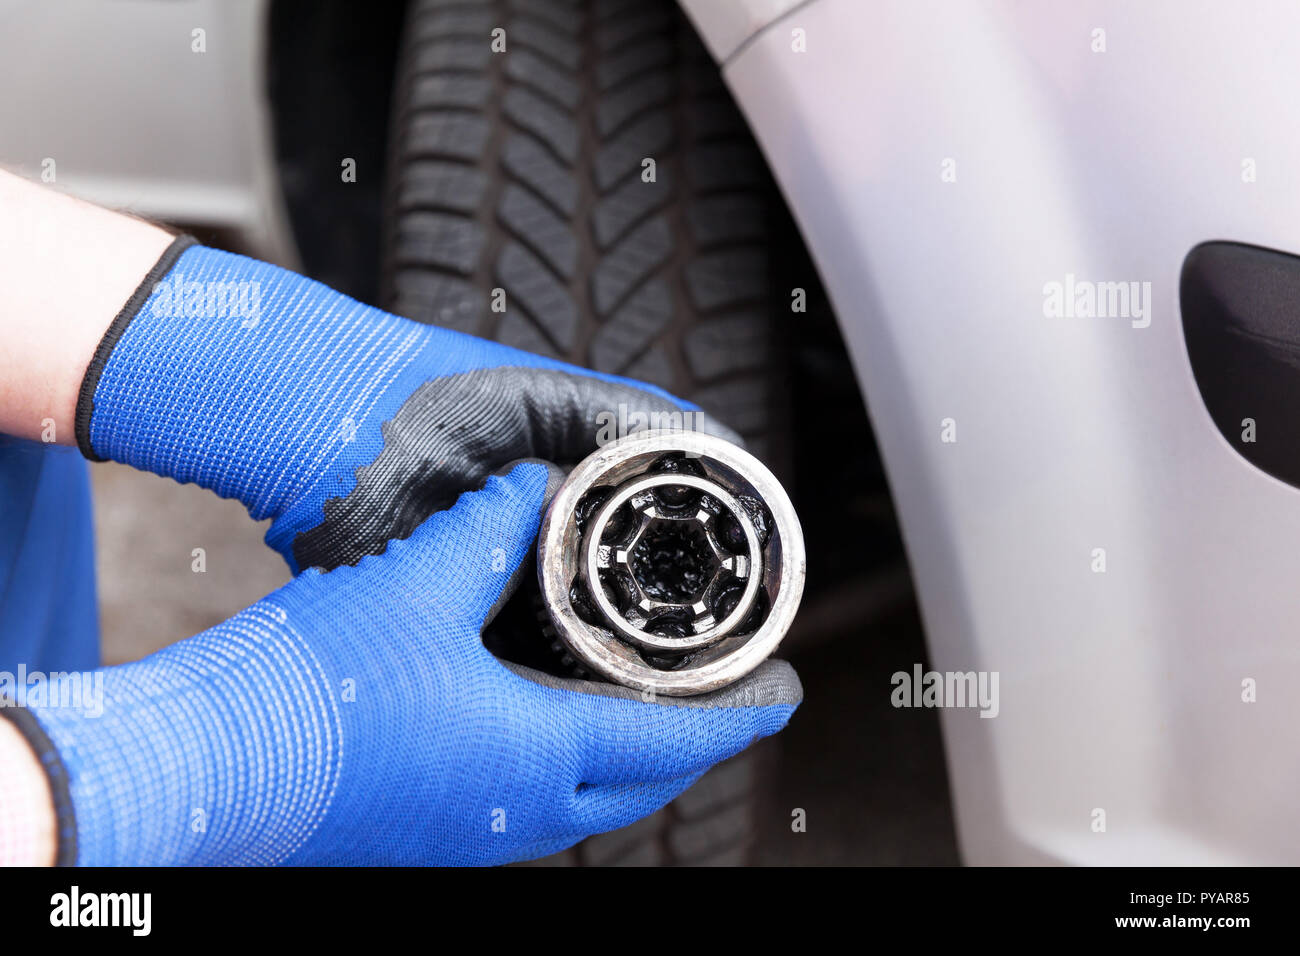 Automechanic, wearing blue work gloves, holding an old constant velocity joint in front of the car. Car service, vehicle parts replacement - Stock Image